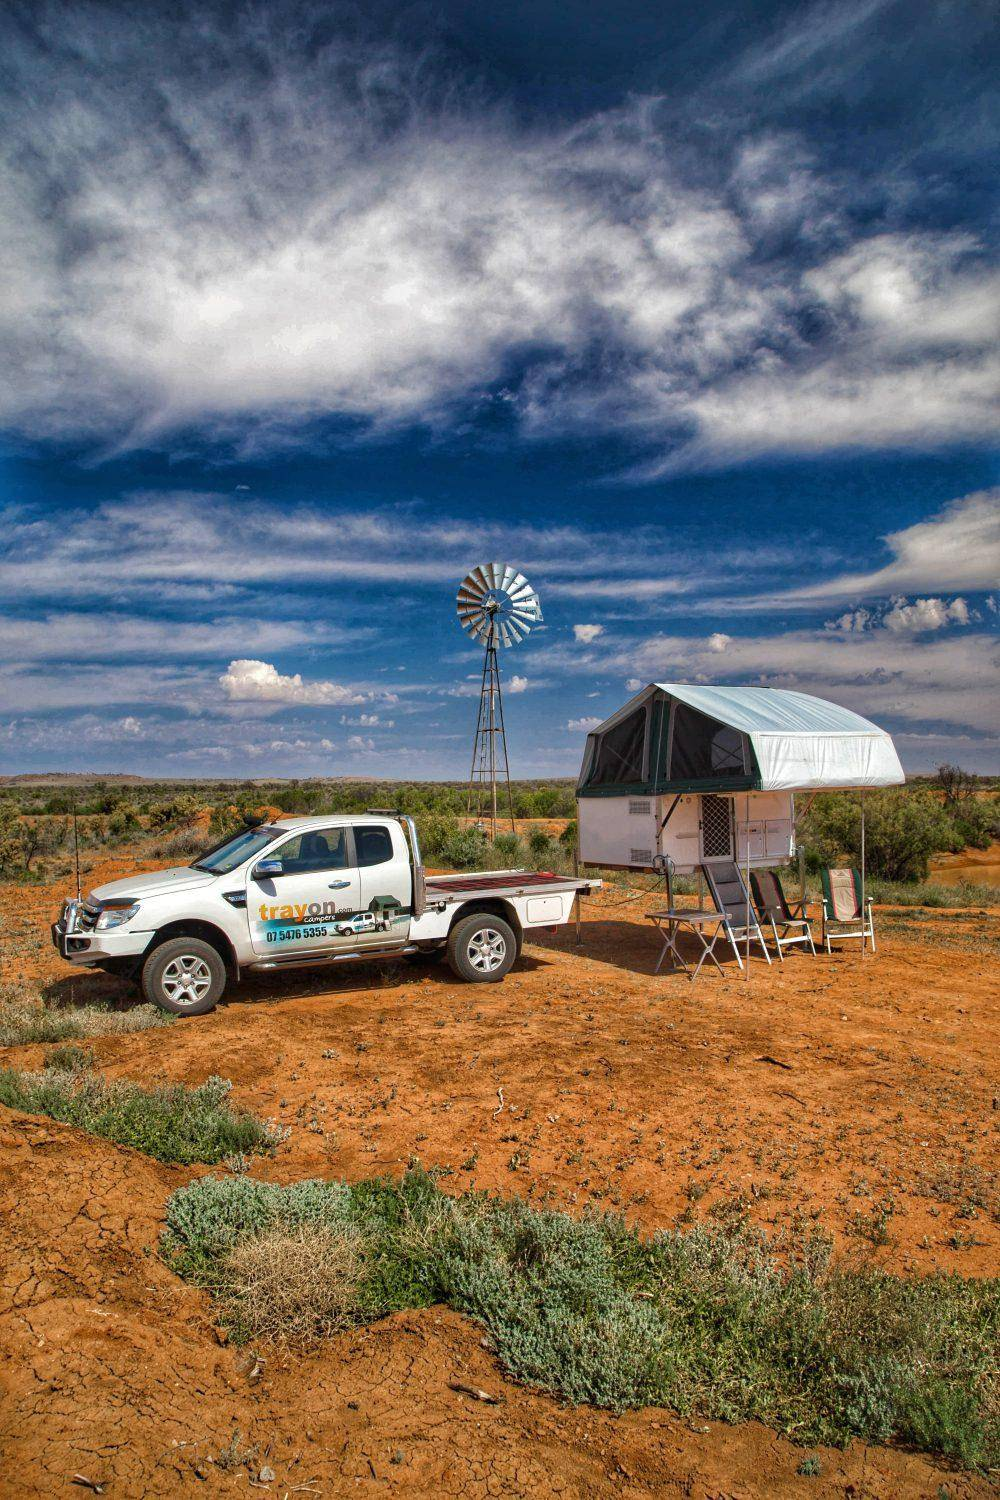 Free standing ute camper - Trayon campers windmill